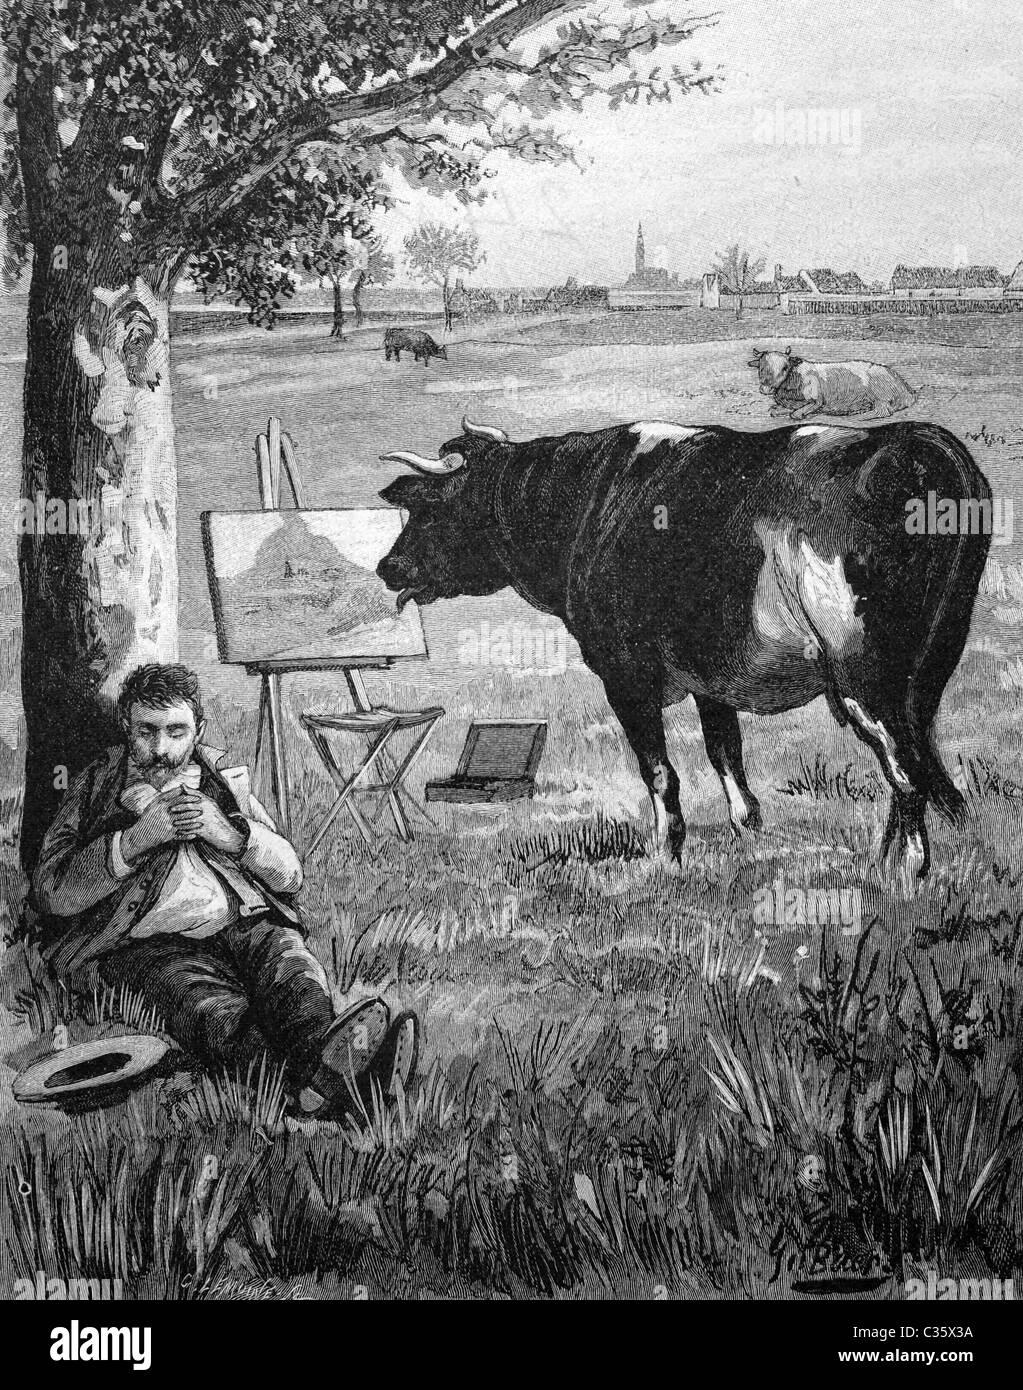 Cow licking a painting while the painter is sleeping, historical picture, about 1893 - Stock Image